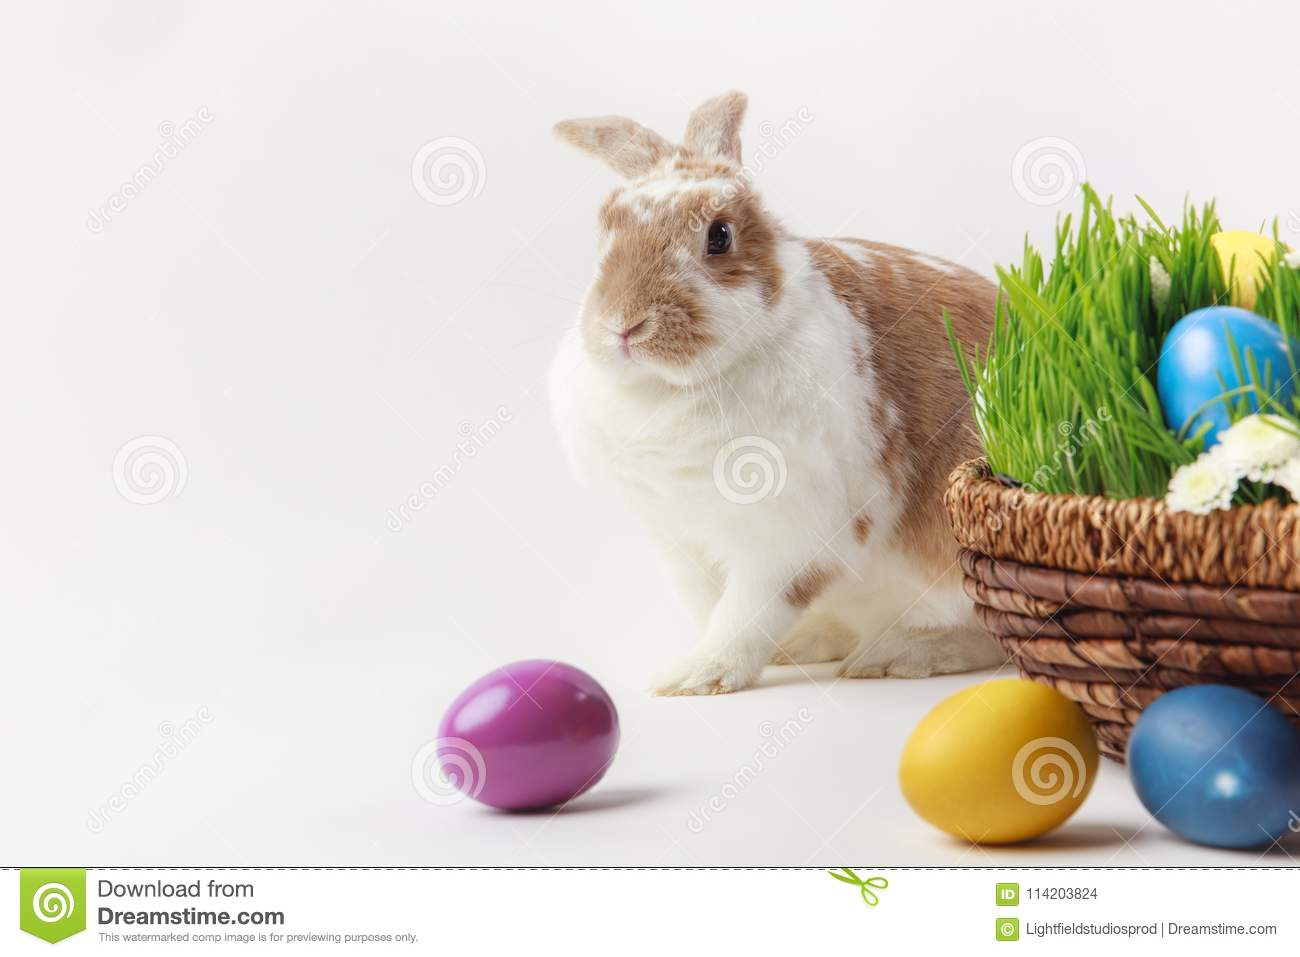 Bunny and basket with grass stems and easter eggs